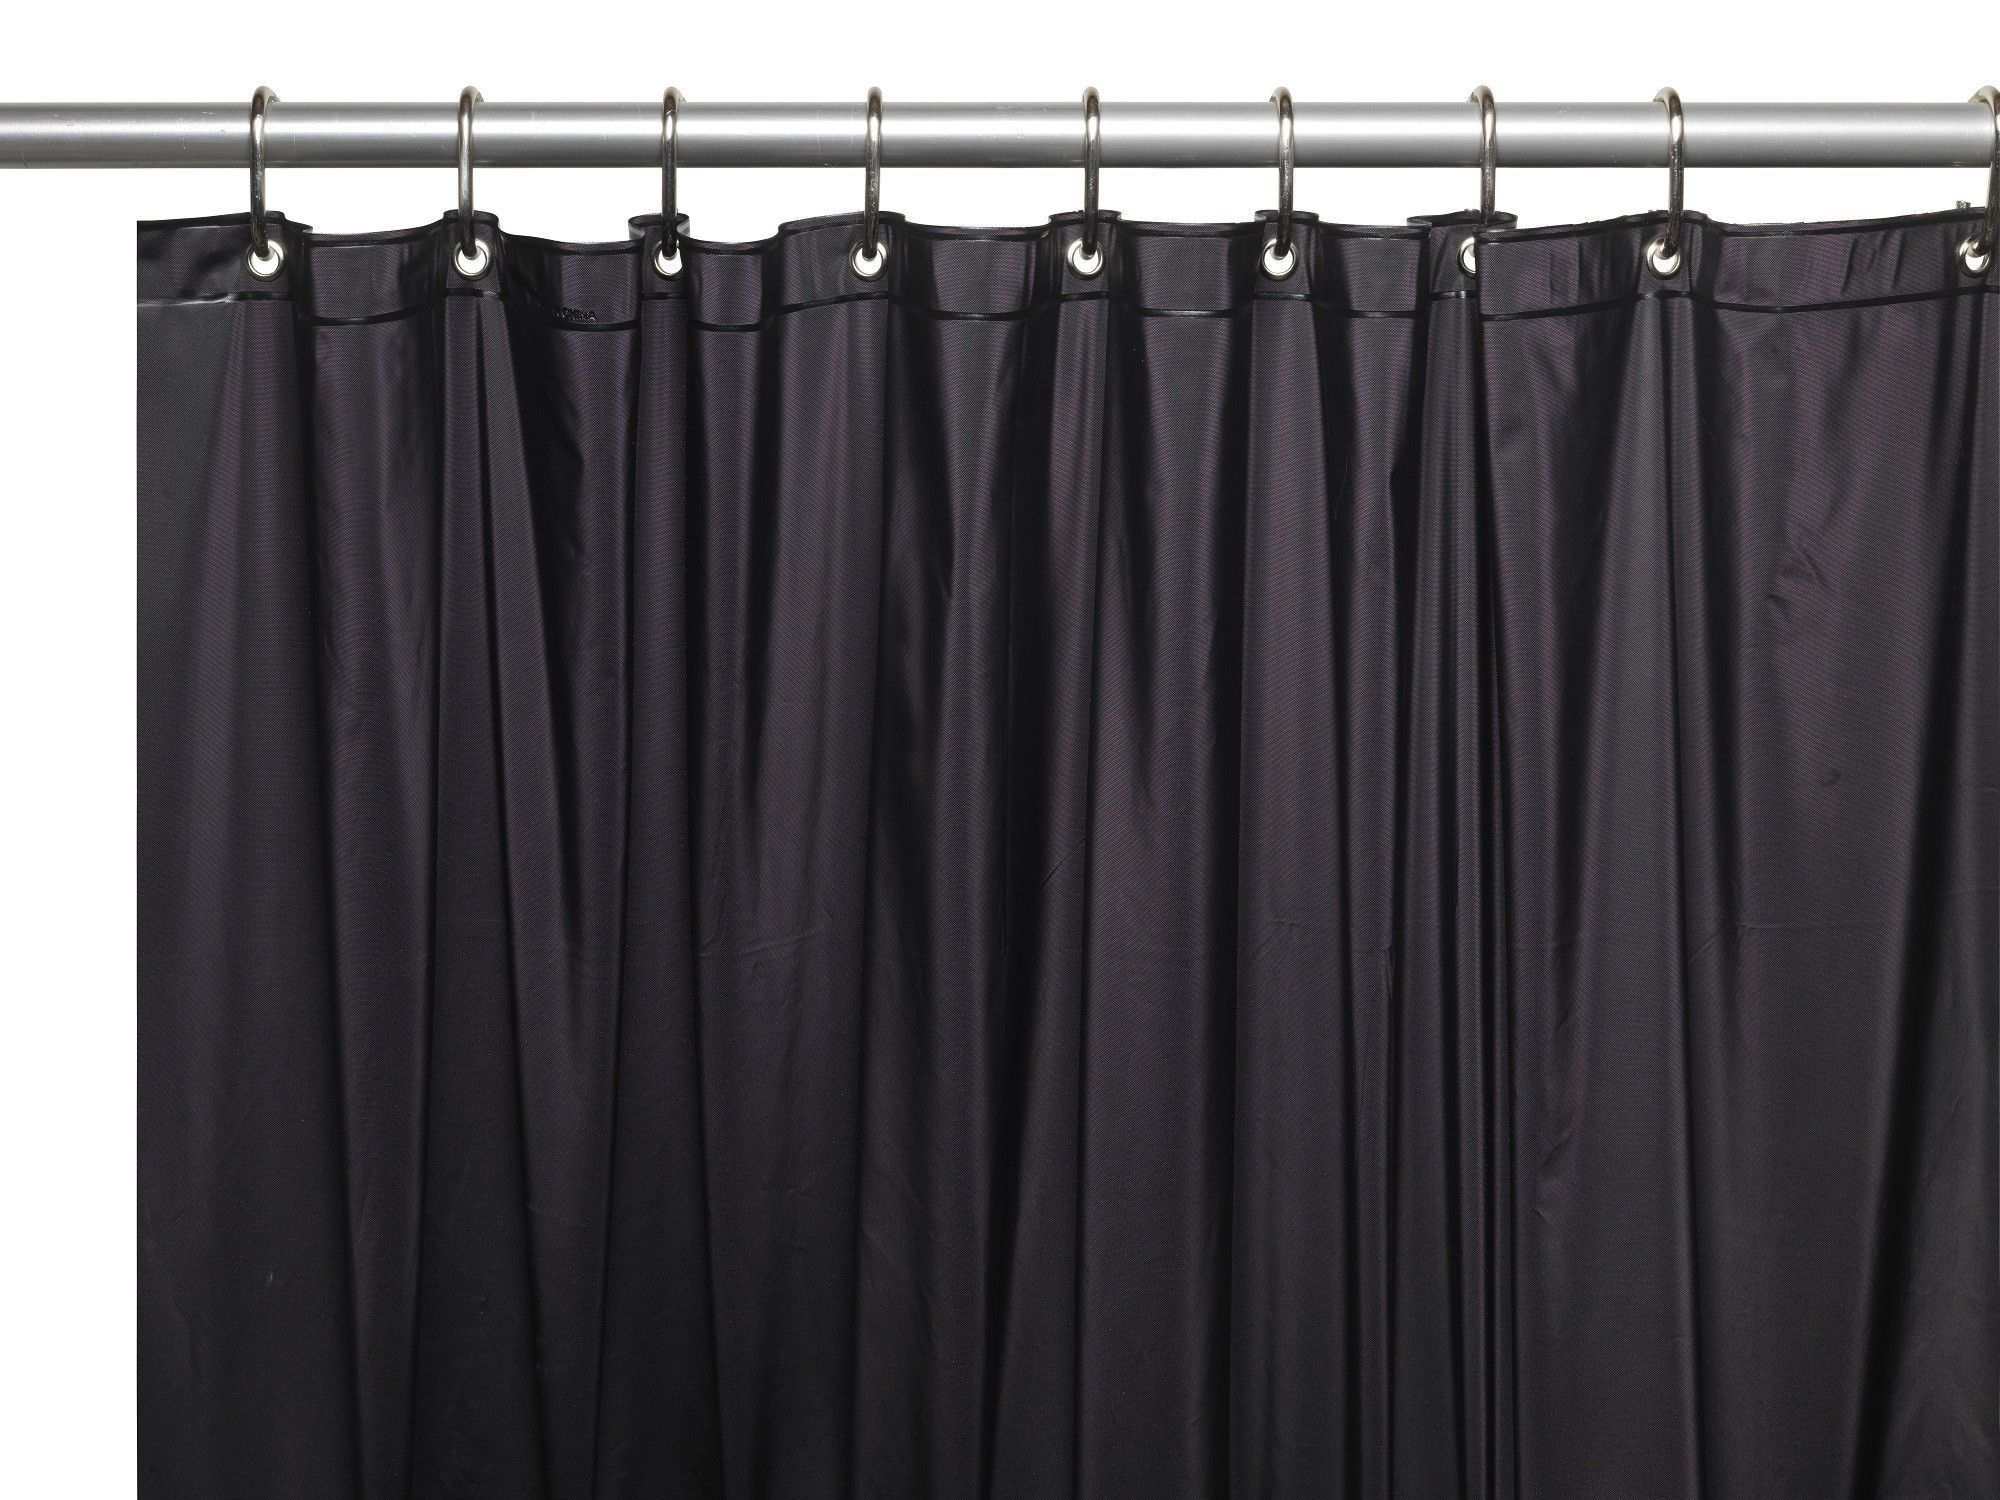 Royal Bath Extra Wide 5 Gauge Vinyl Shower Curtain Liner with ...